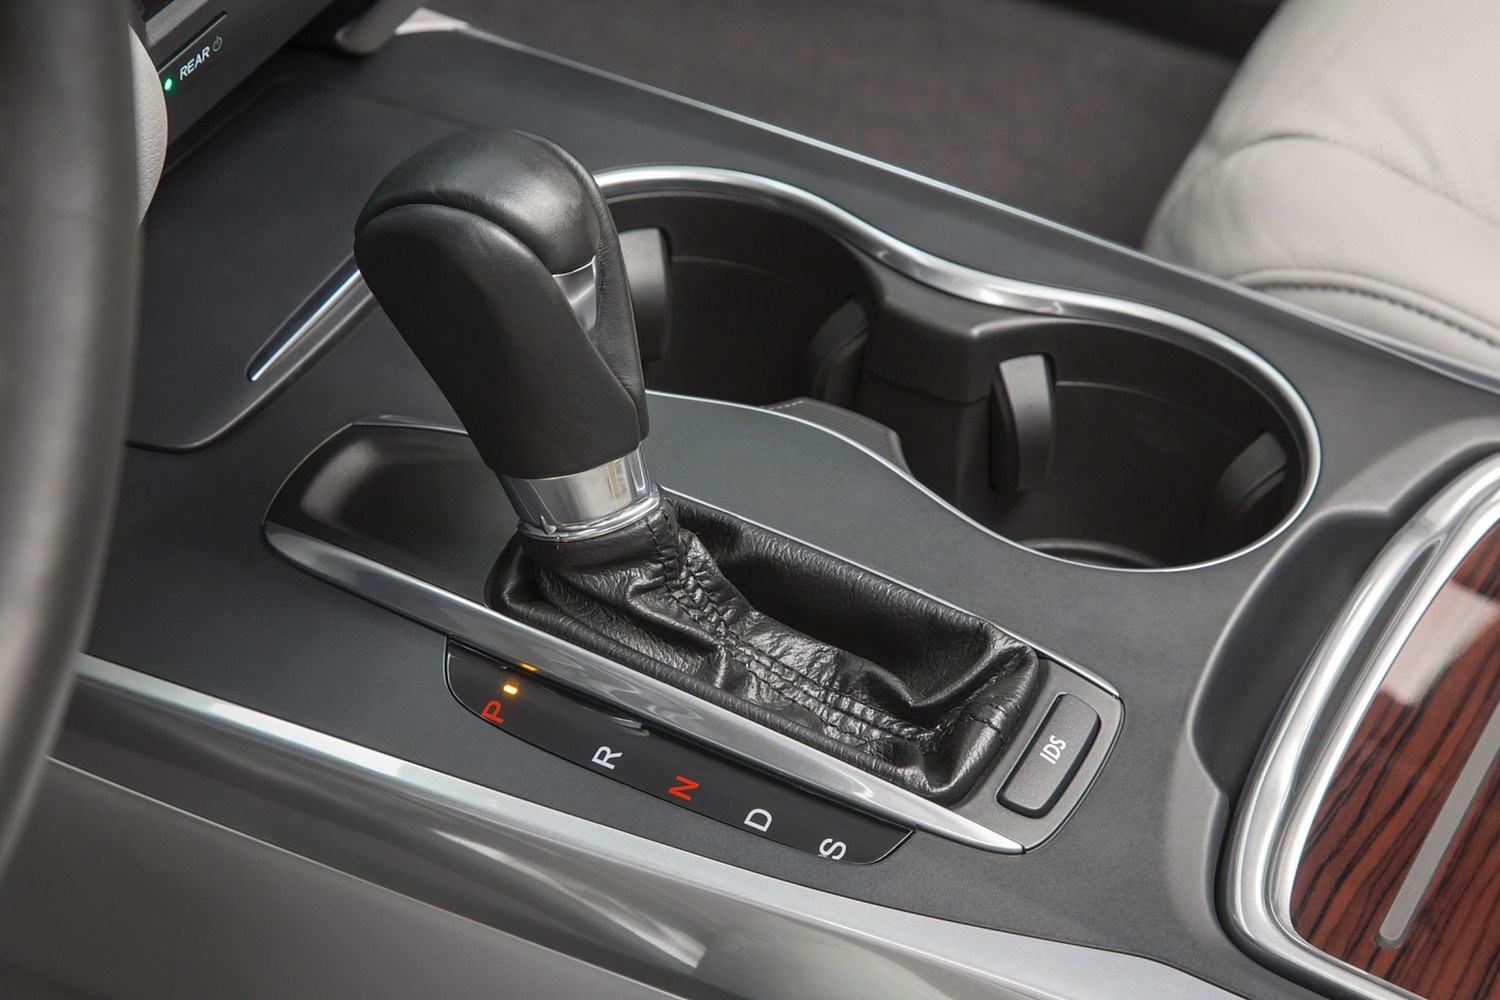 Acura MDX SH-AWD w/Technology and Entertainment Packages 4dr SUV Shifter (2014 model year shown)